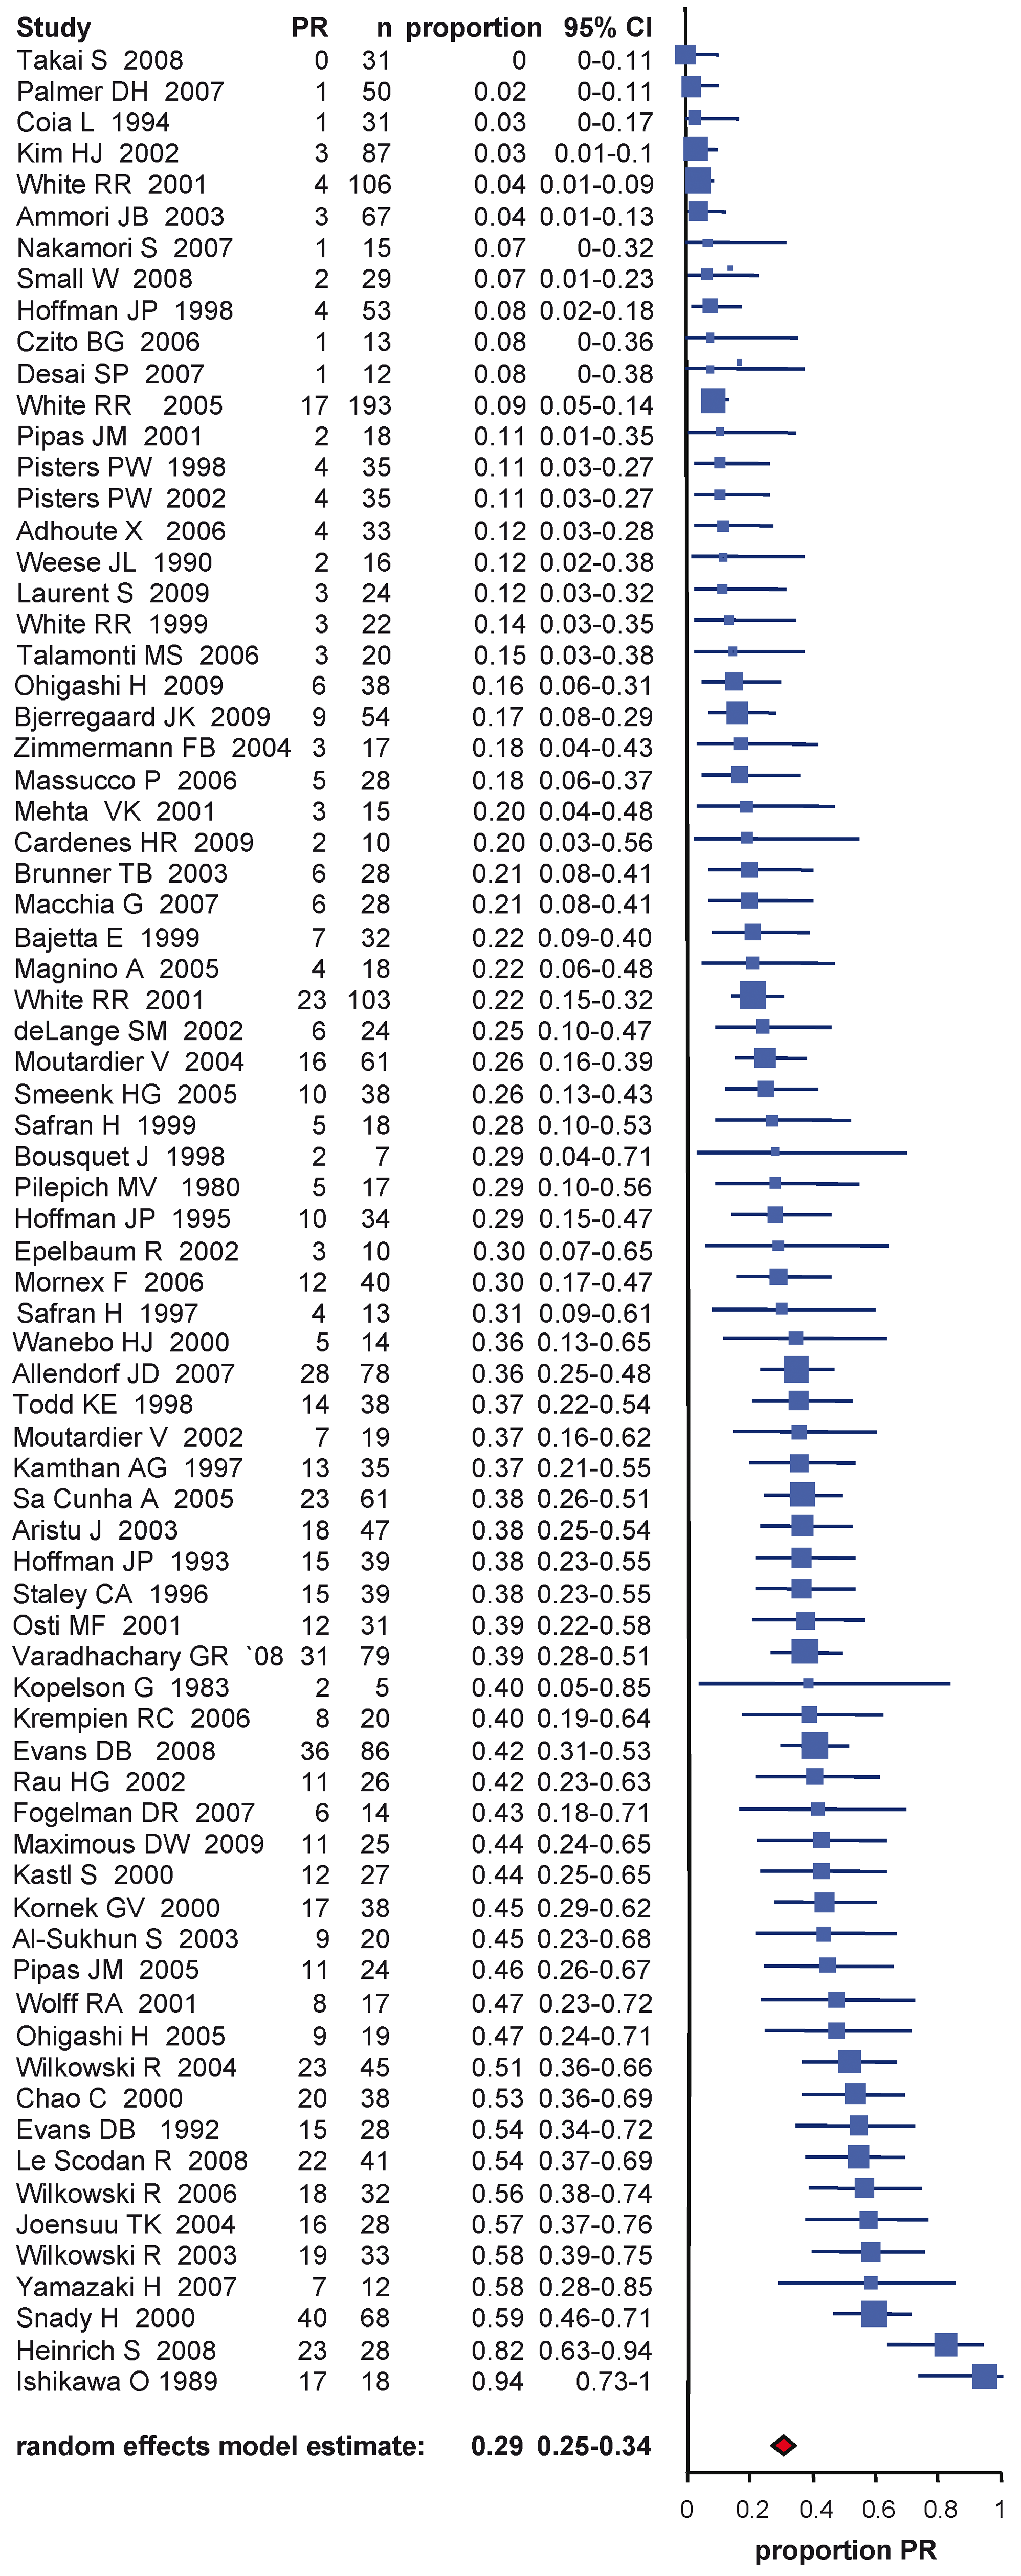 Estimates of partial response percentages in patients following neoadjuvant therapy and re-staging including the 95% confidence interval from the random effect model and number of patients for each study (<i>n</i>).